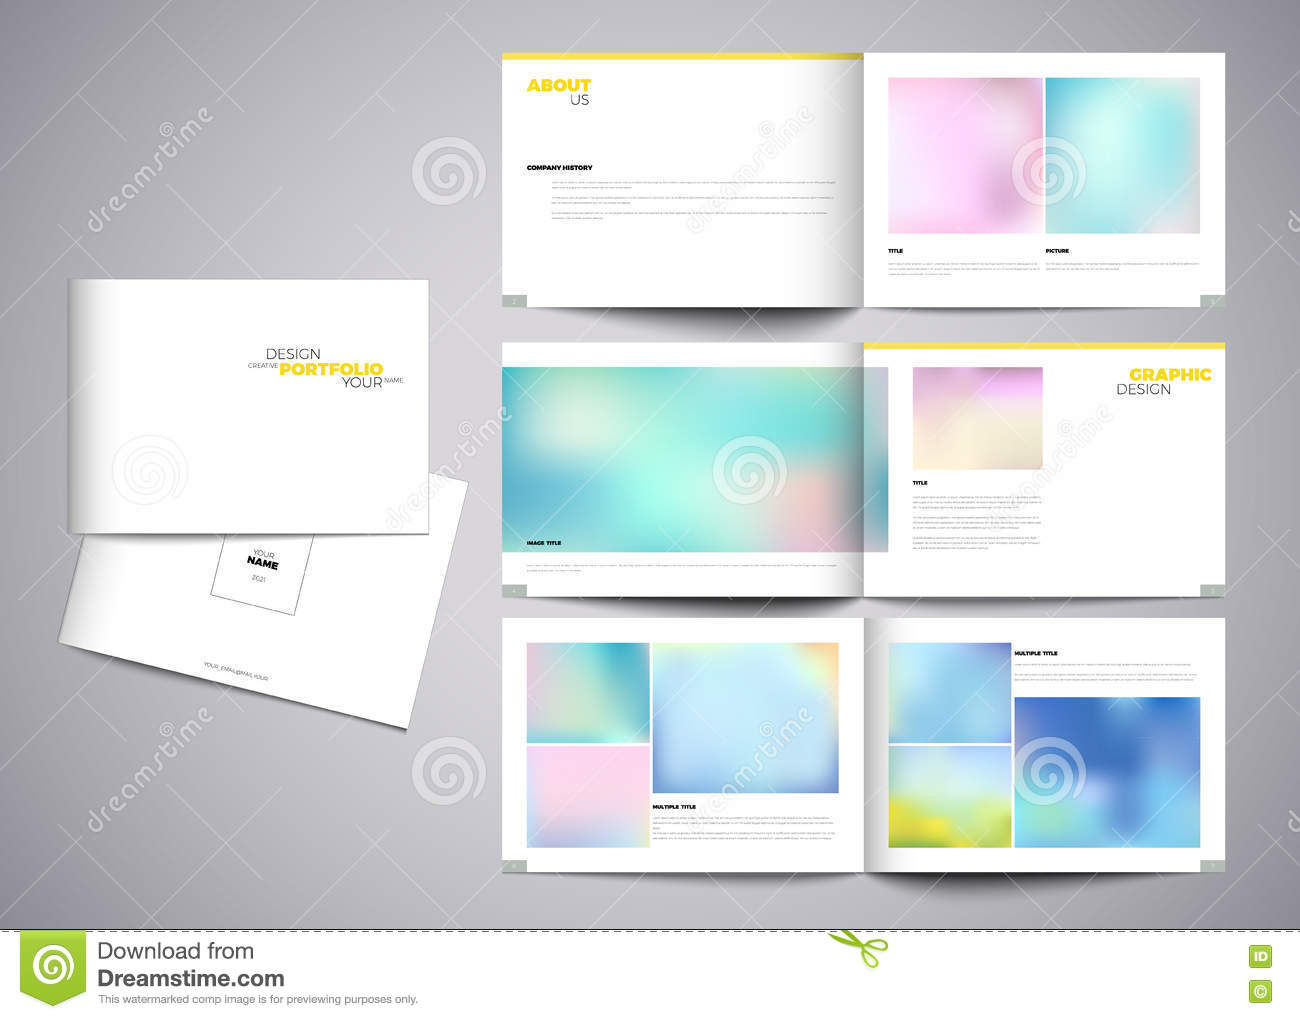 Graphic designer portfolio template free download images for Graphic designer portfolio template free download